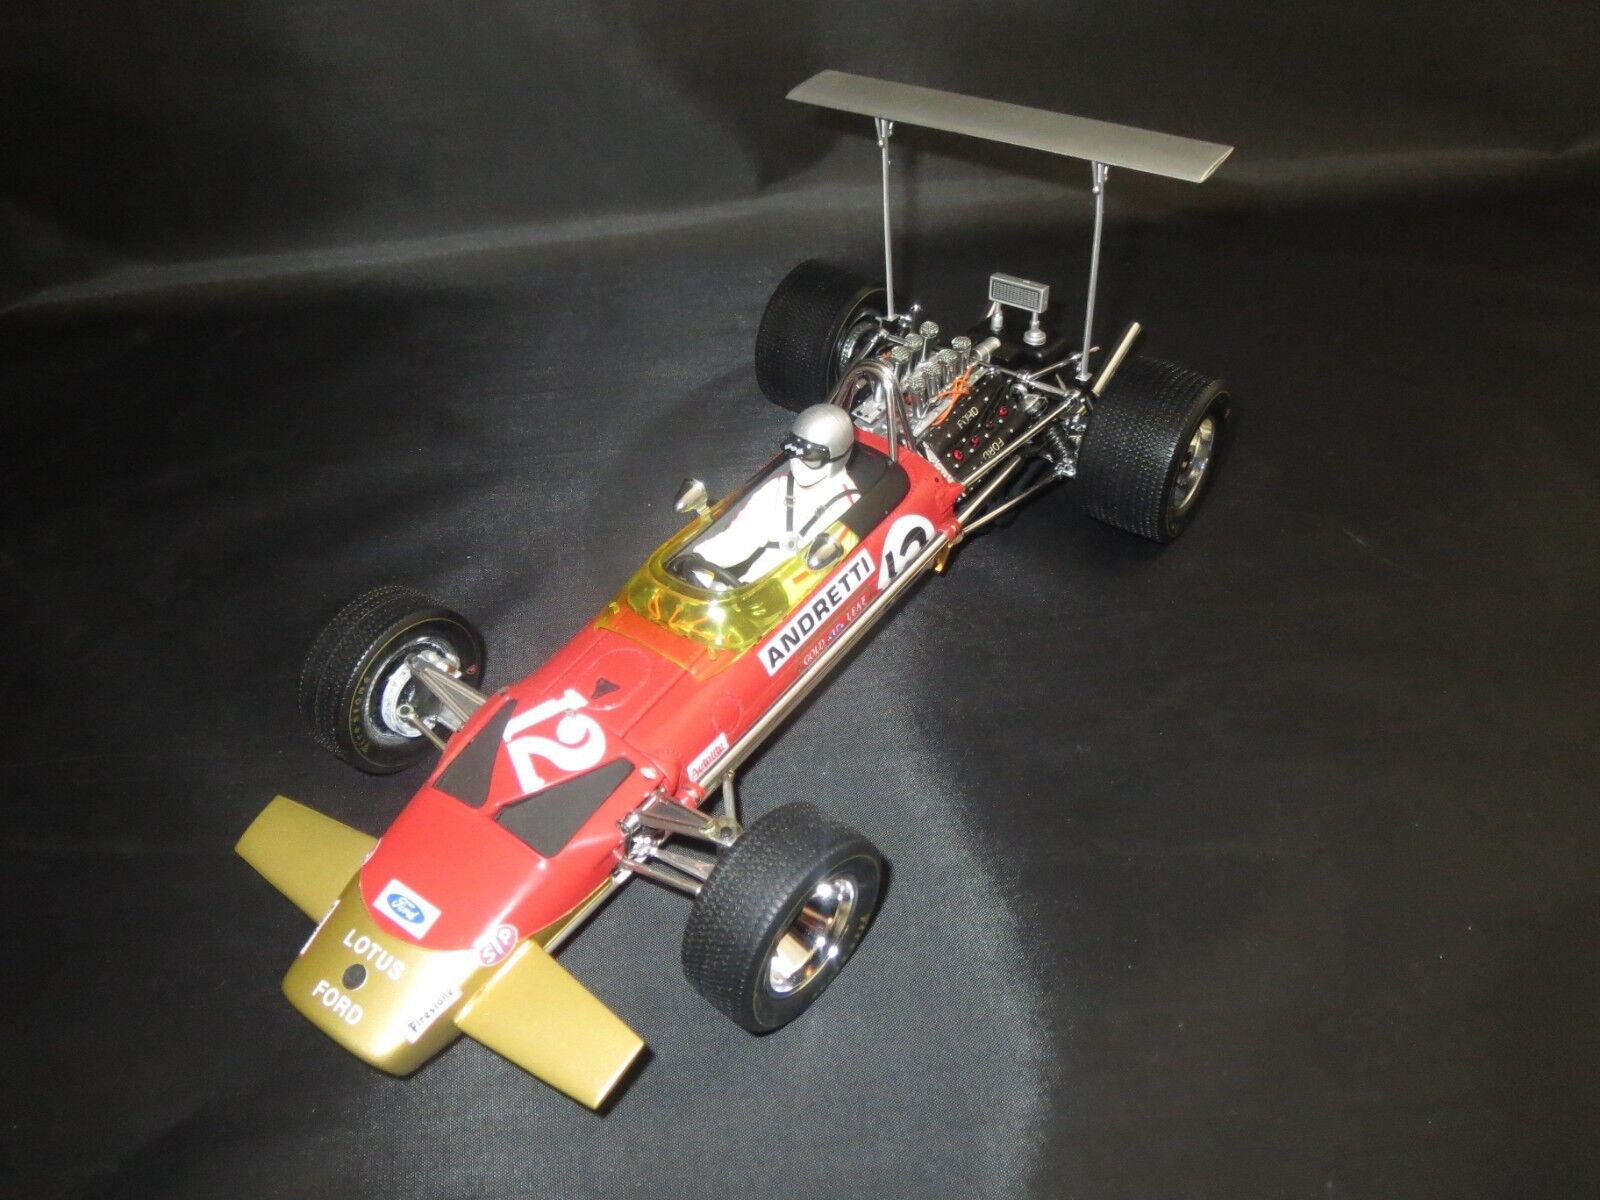 Exoto motorbox lotus-ford Type 49b gp United States (m. andretti) 1 18 sin VP.